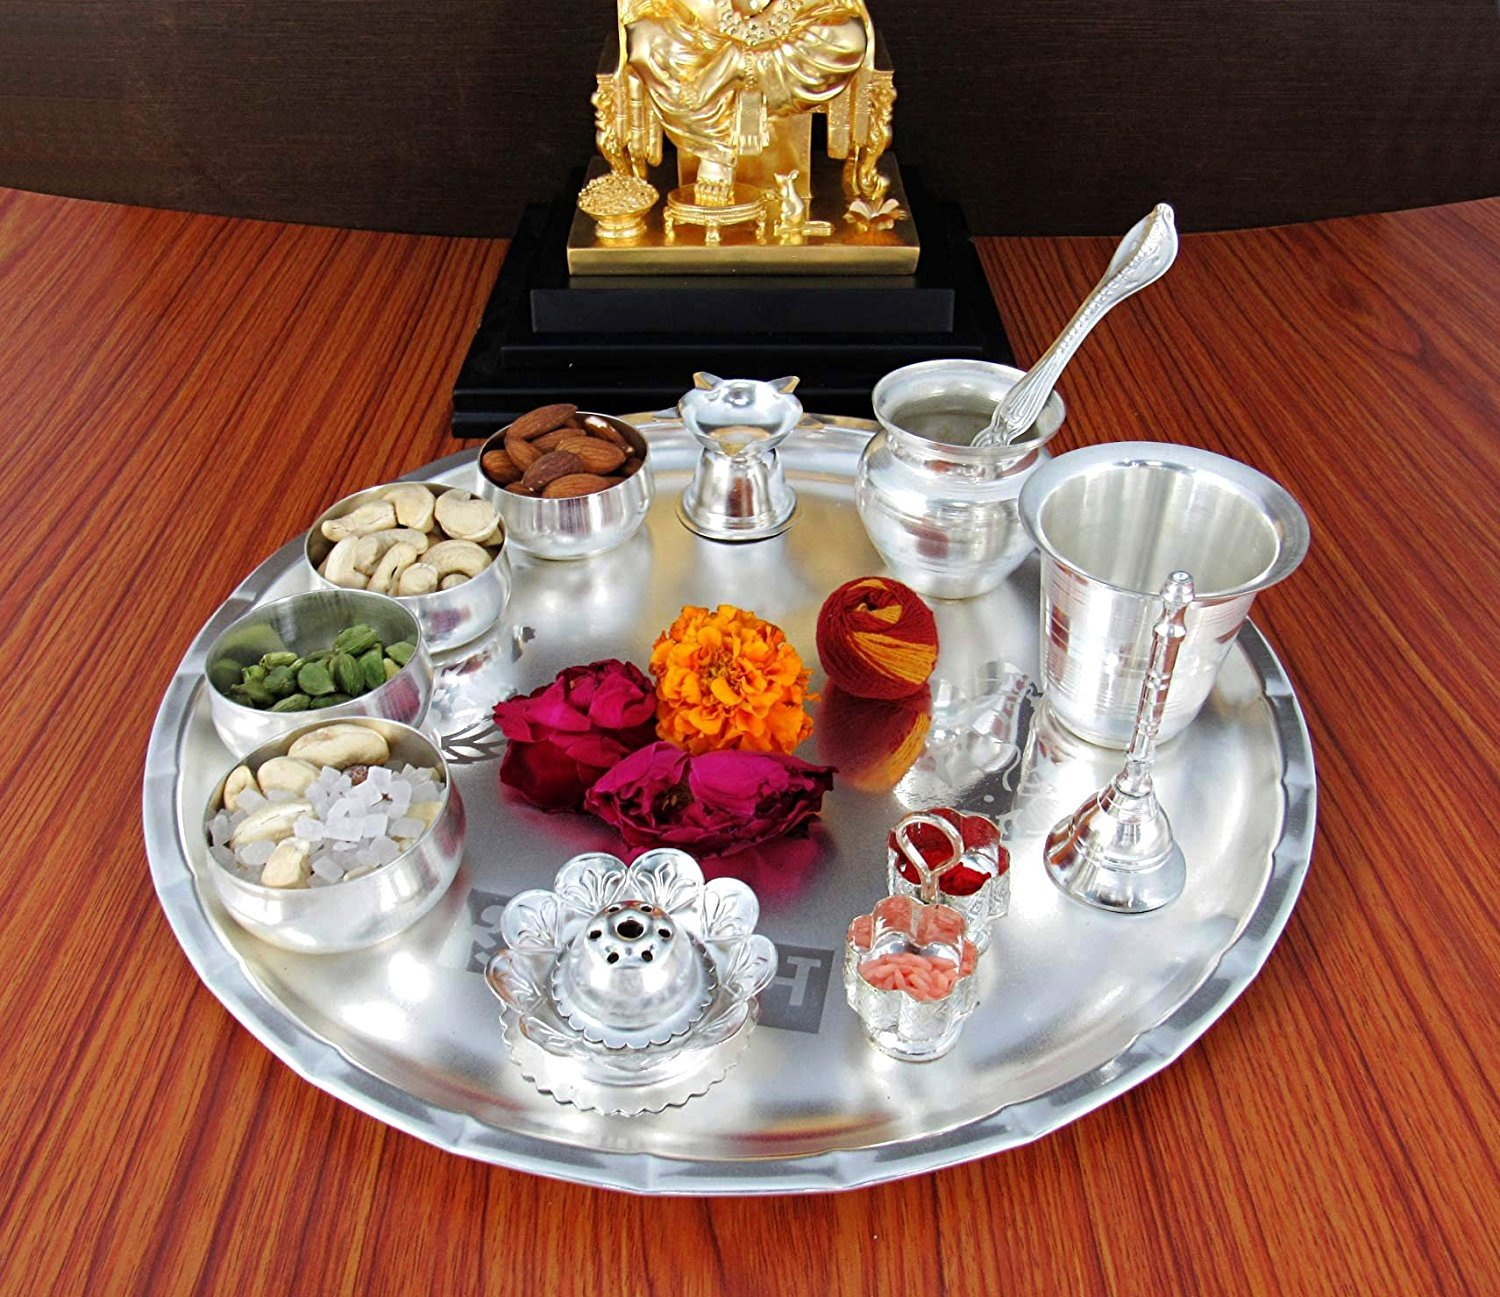 Nobility Silver Plated Pooja Thali Set - Classic Occasional Gift - Puja Thali Decorative - Wedding Return Gift - Size: 12 inch by NOBILITY